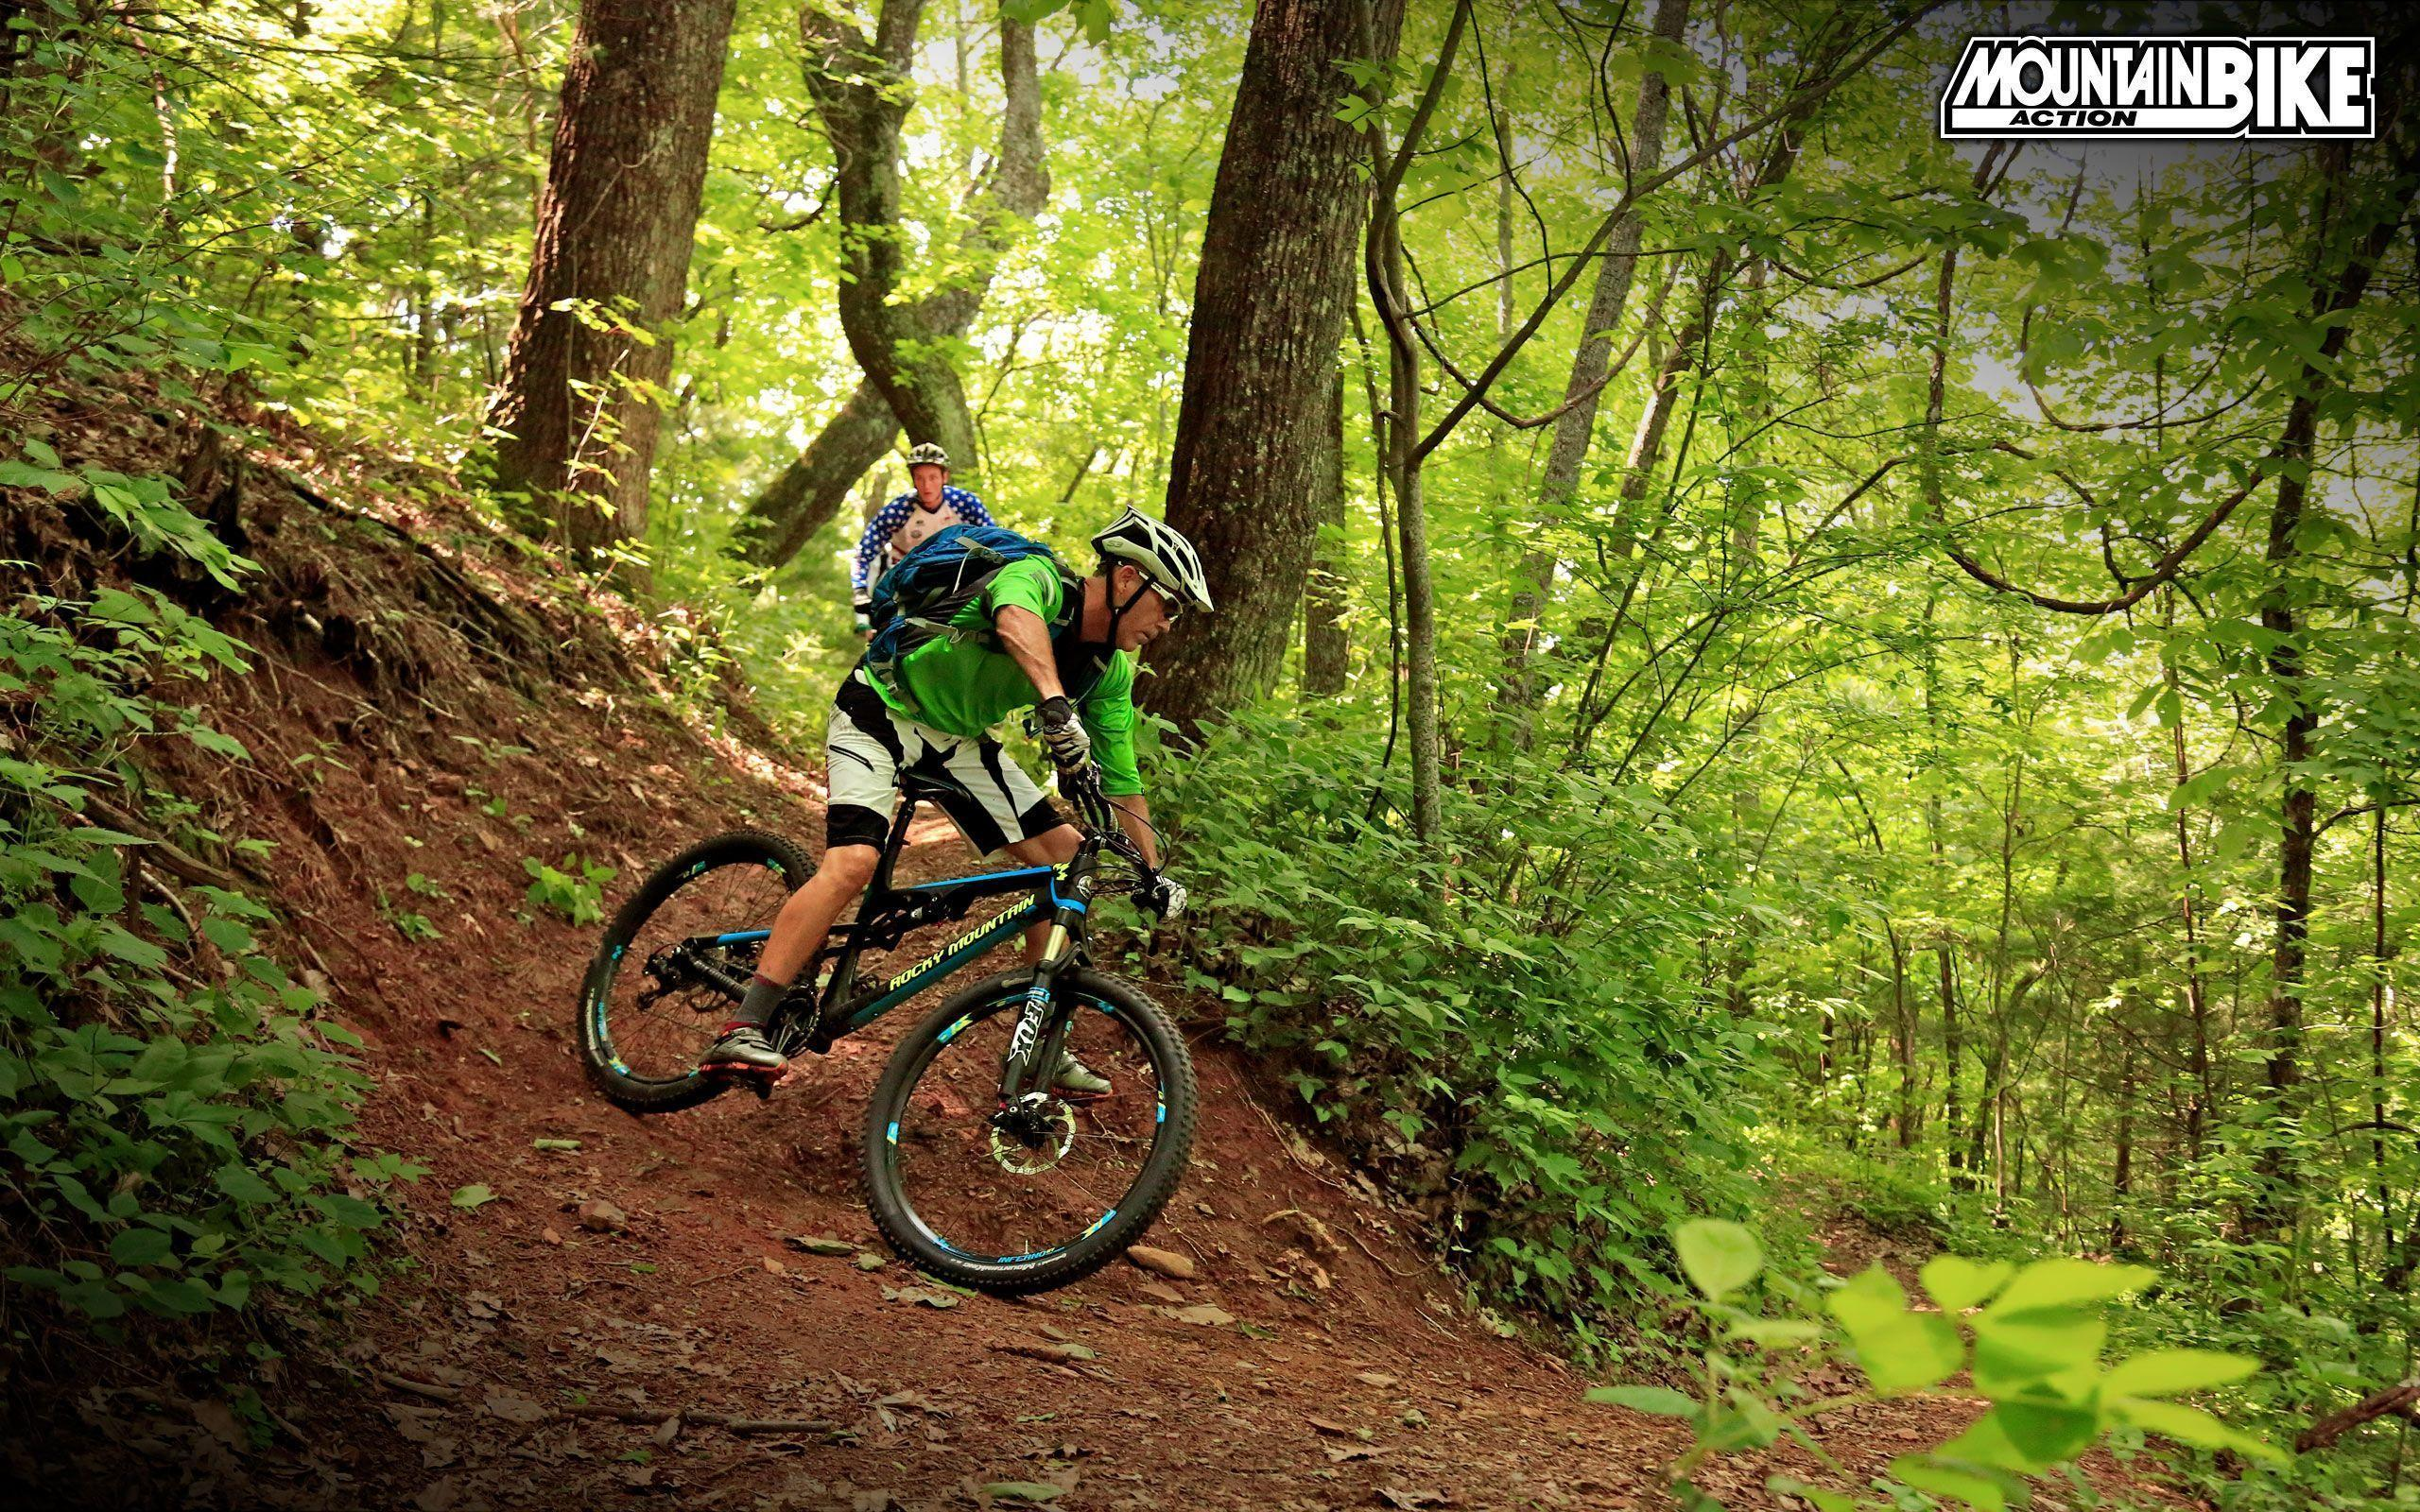 Mountain Road Bike Wallpapers: Dangerous Bike Stunt In 2016 HD Wallpapers I